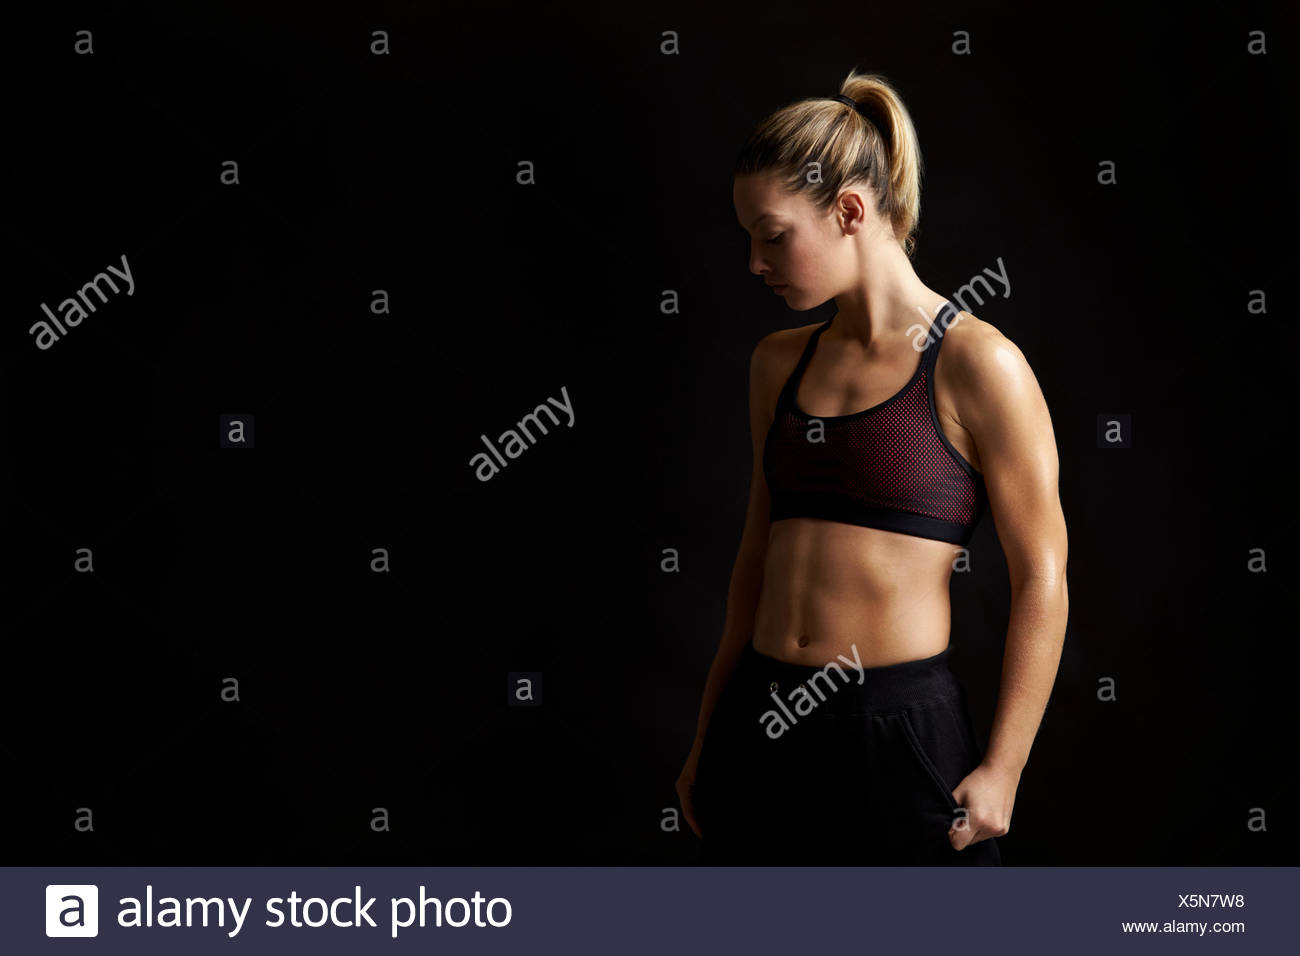 Portrait of a blonde woman in sports clothing looking down Stock Photo